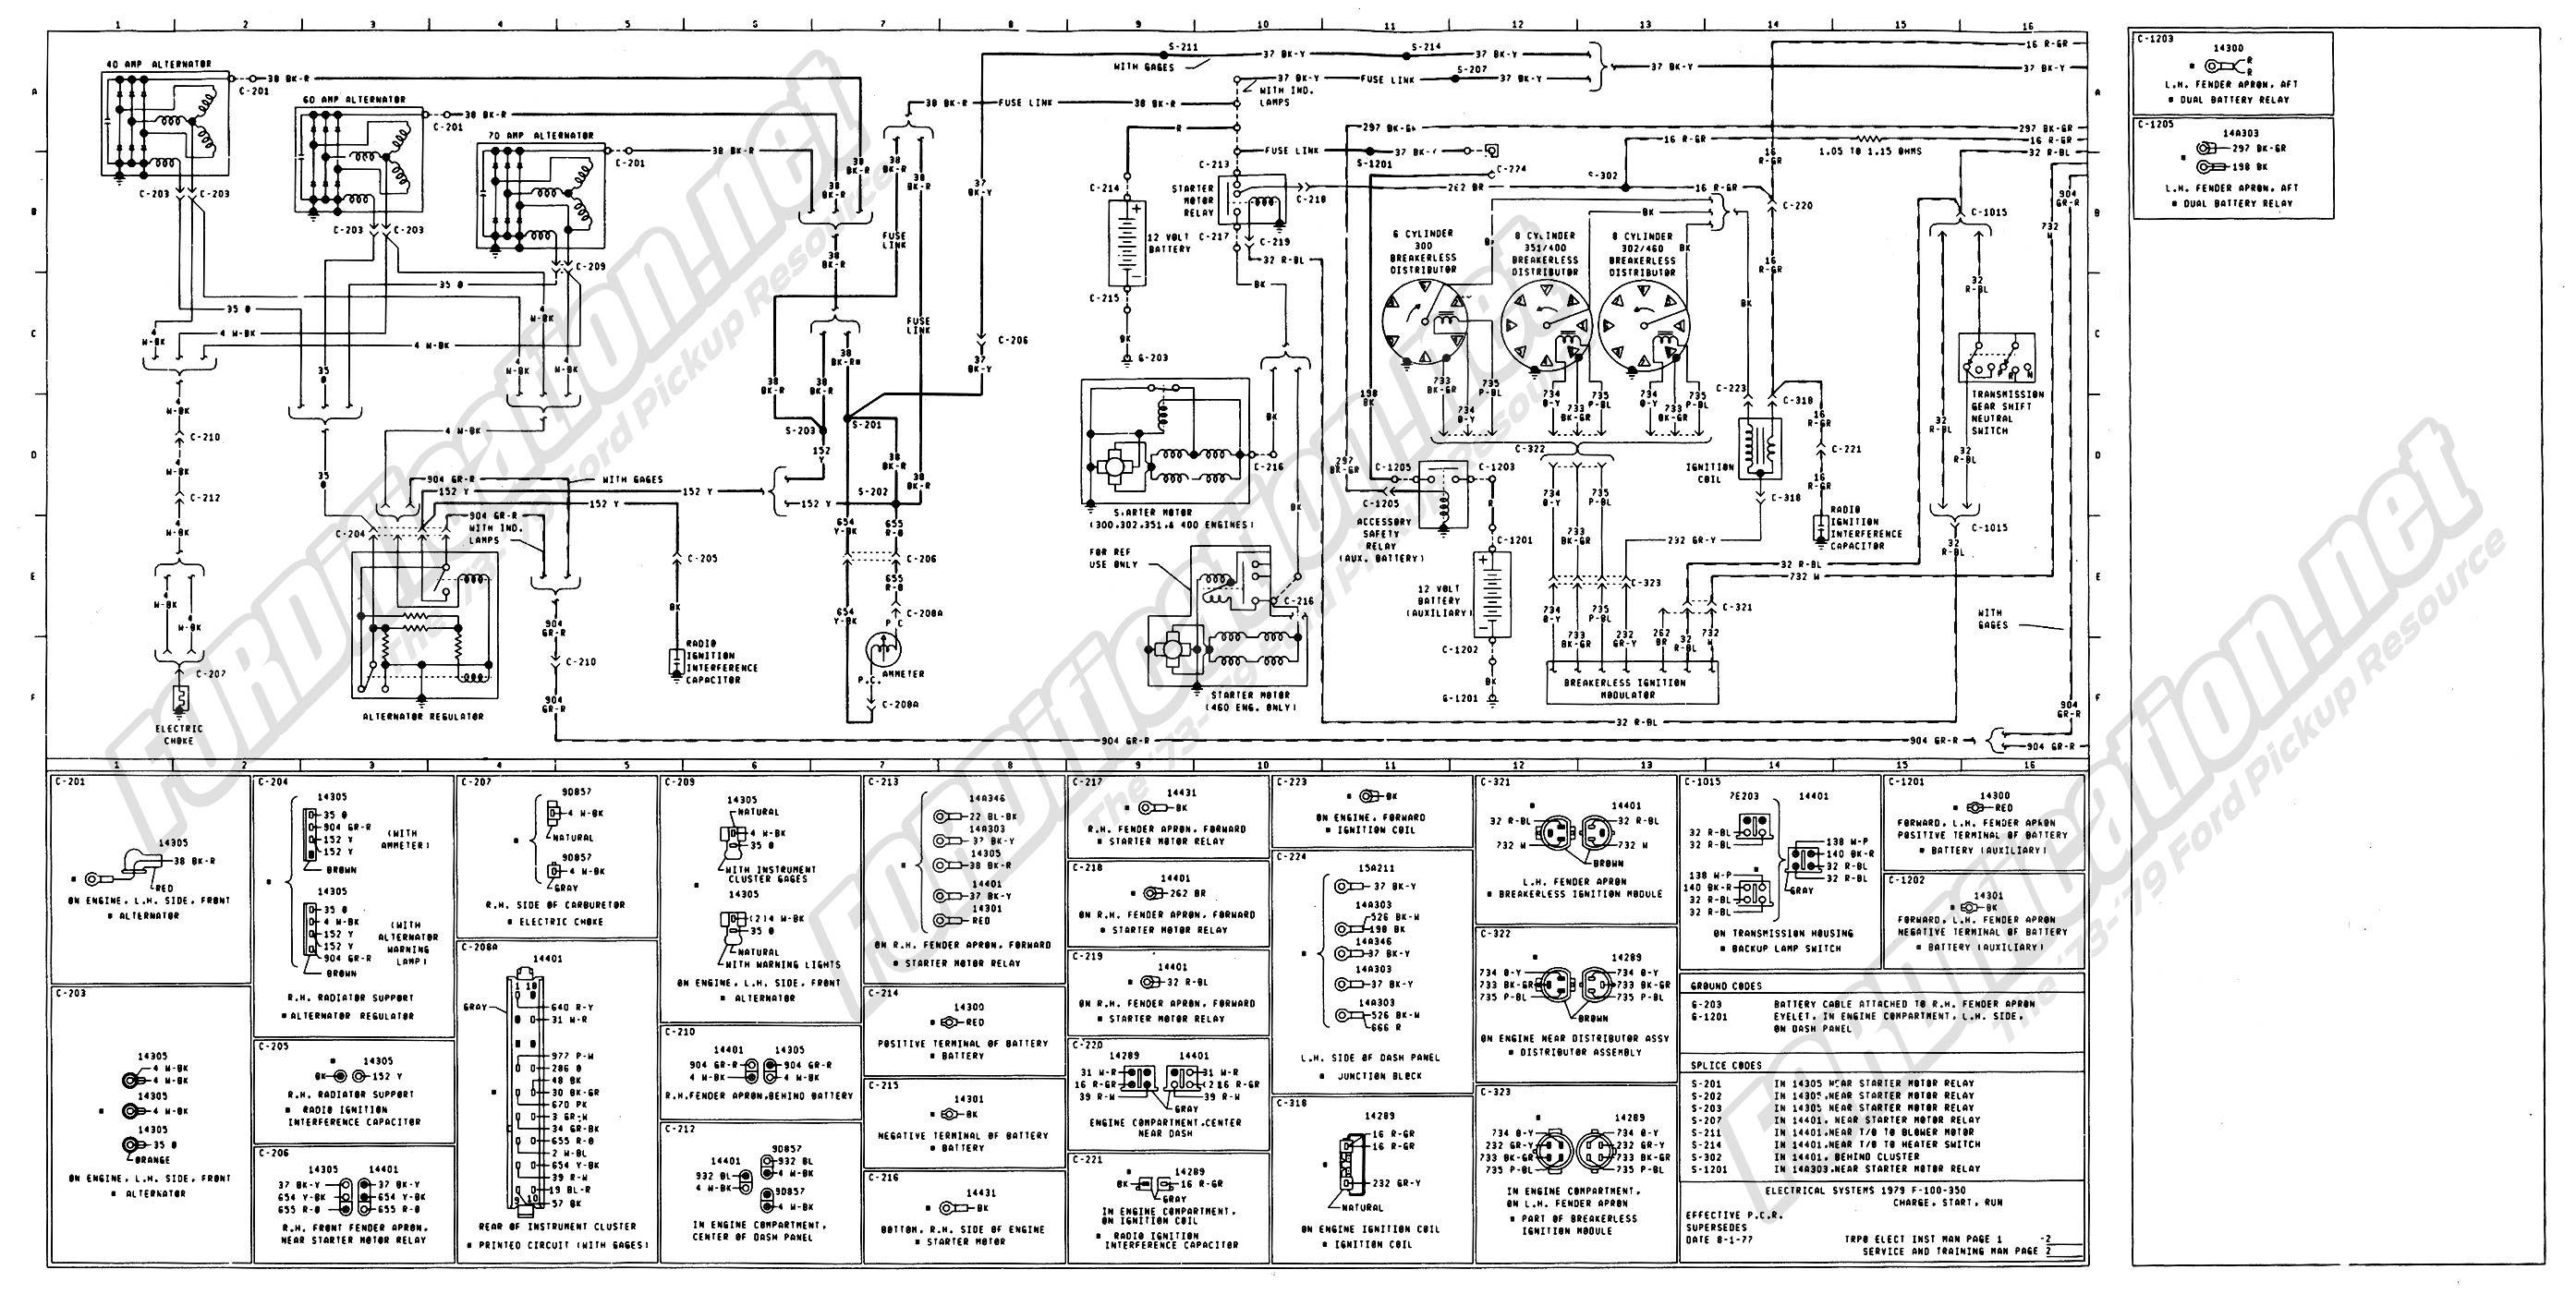 79 Ford F100 Wiring Diagram | Wiring Diagram F Wiring Schematics on